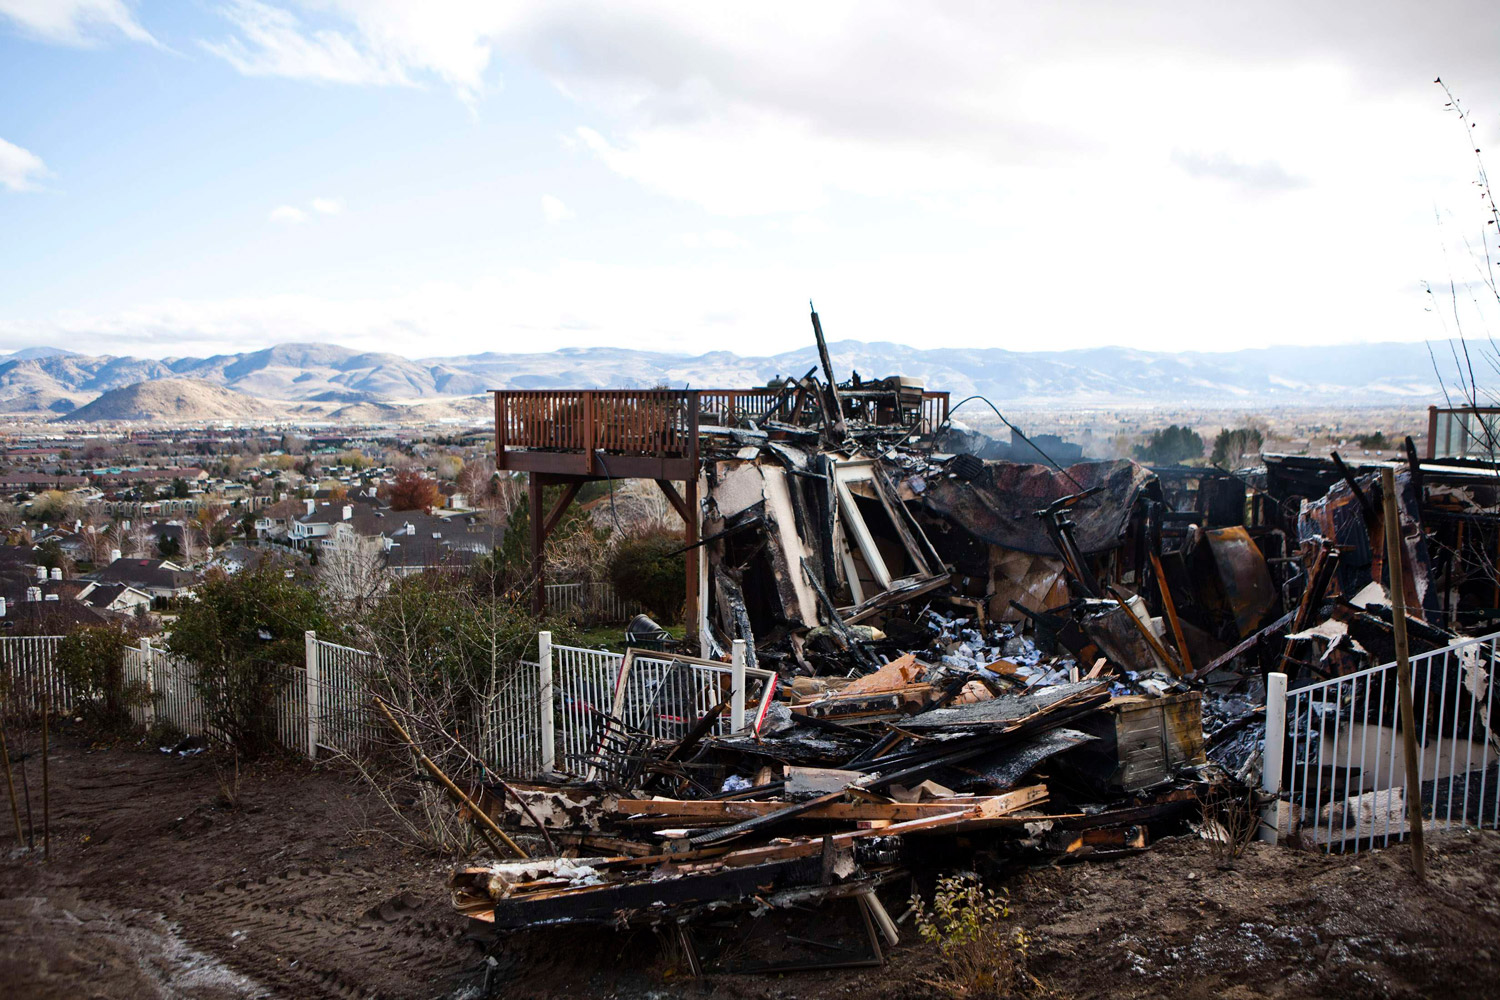 November 19, 2011. The remains of Joanna Irwin and Tim Galvin's burned home in Reno, Nevada. Nevada's governor declared a state of emergency over a wildfire raging at the edge of a hilly Reno suburb that has damaged 25 structures, forced 9,500 people from their homes and was blamed for an elderly man's death.